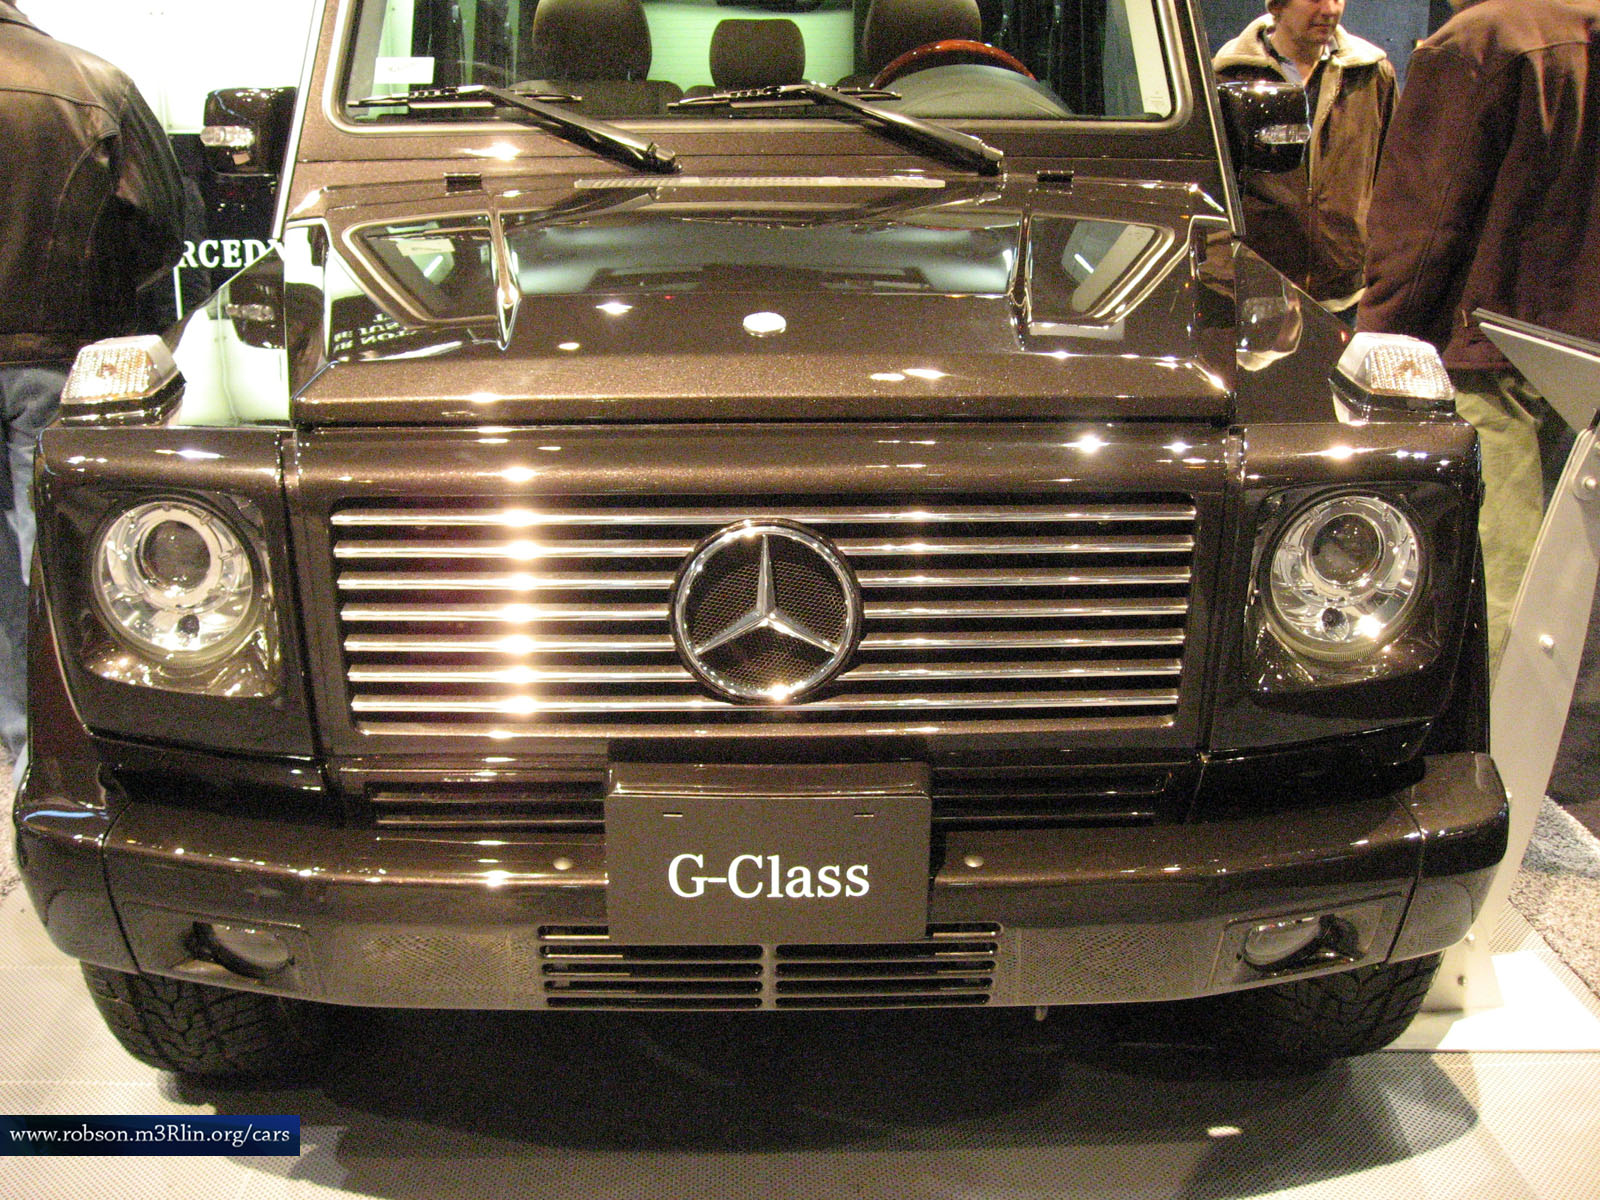 Mercedes benz g500 picture 9 reviews news specs buy car for Mercedes benz g500 review